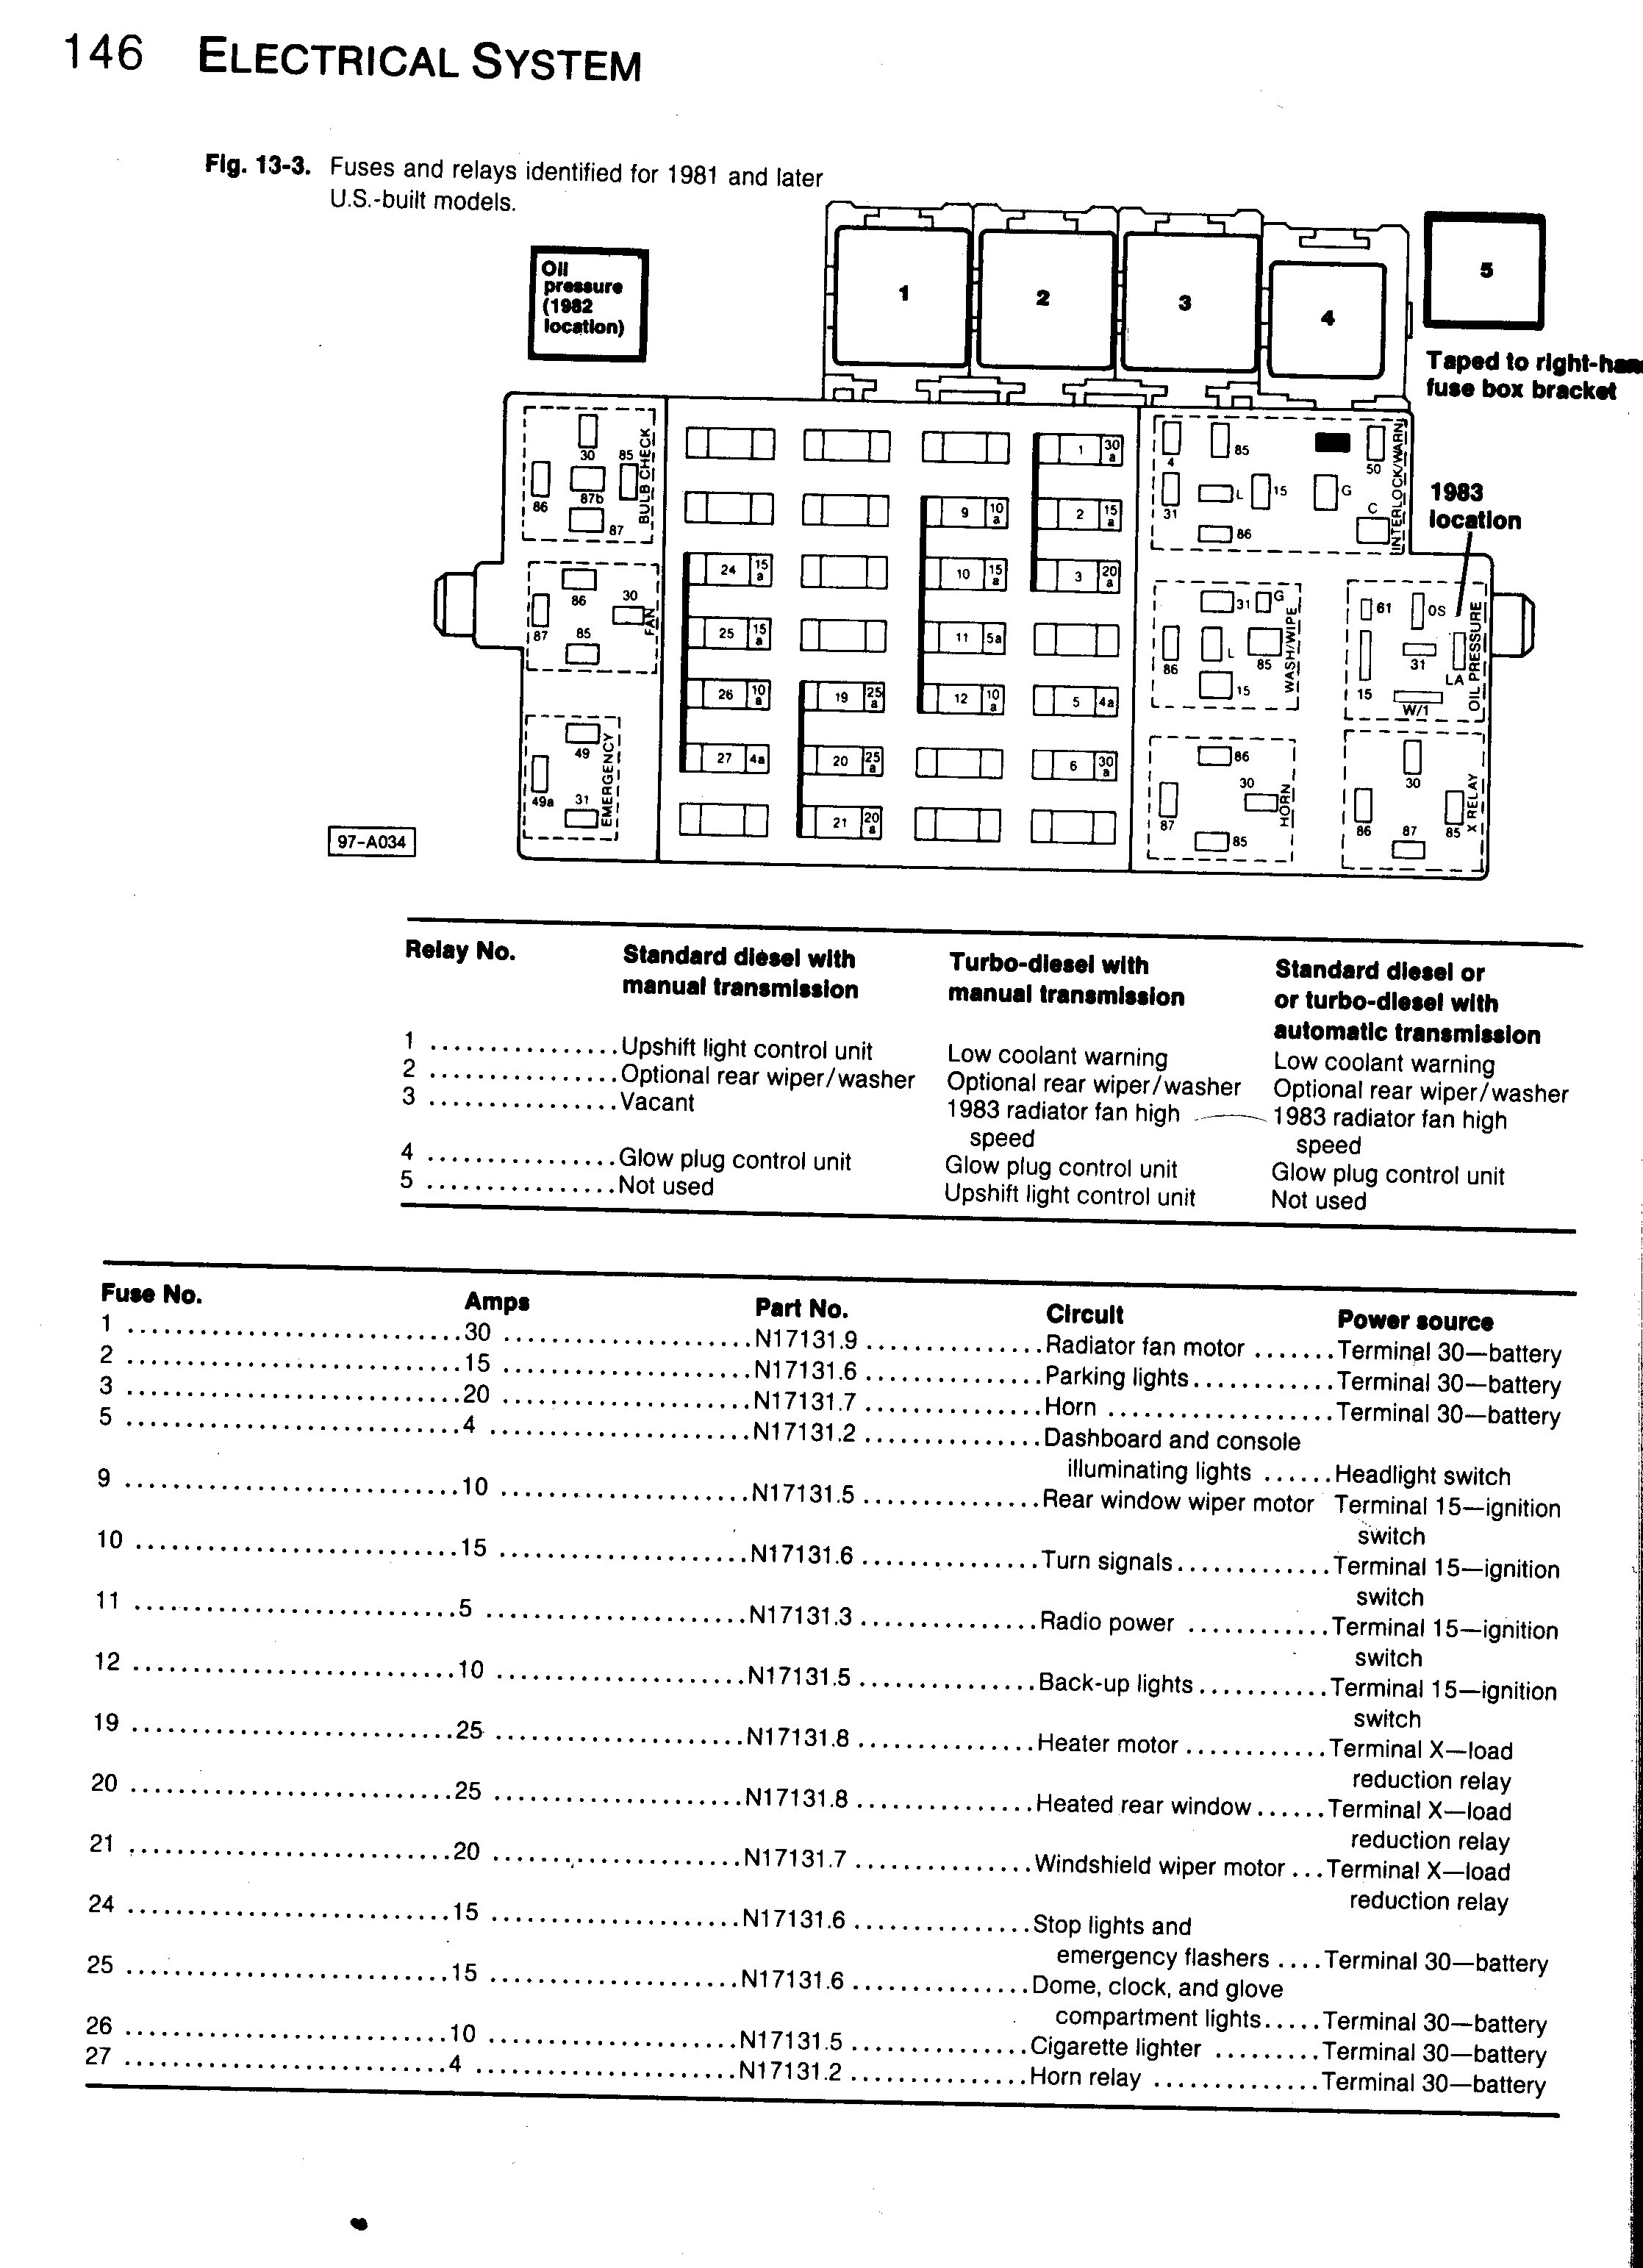 1999 Ford Festiva Fuse Box Detailed Schematics Diagram 1991 F 350 Glow Plug Wiring 2013 E350 E Series